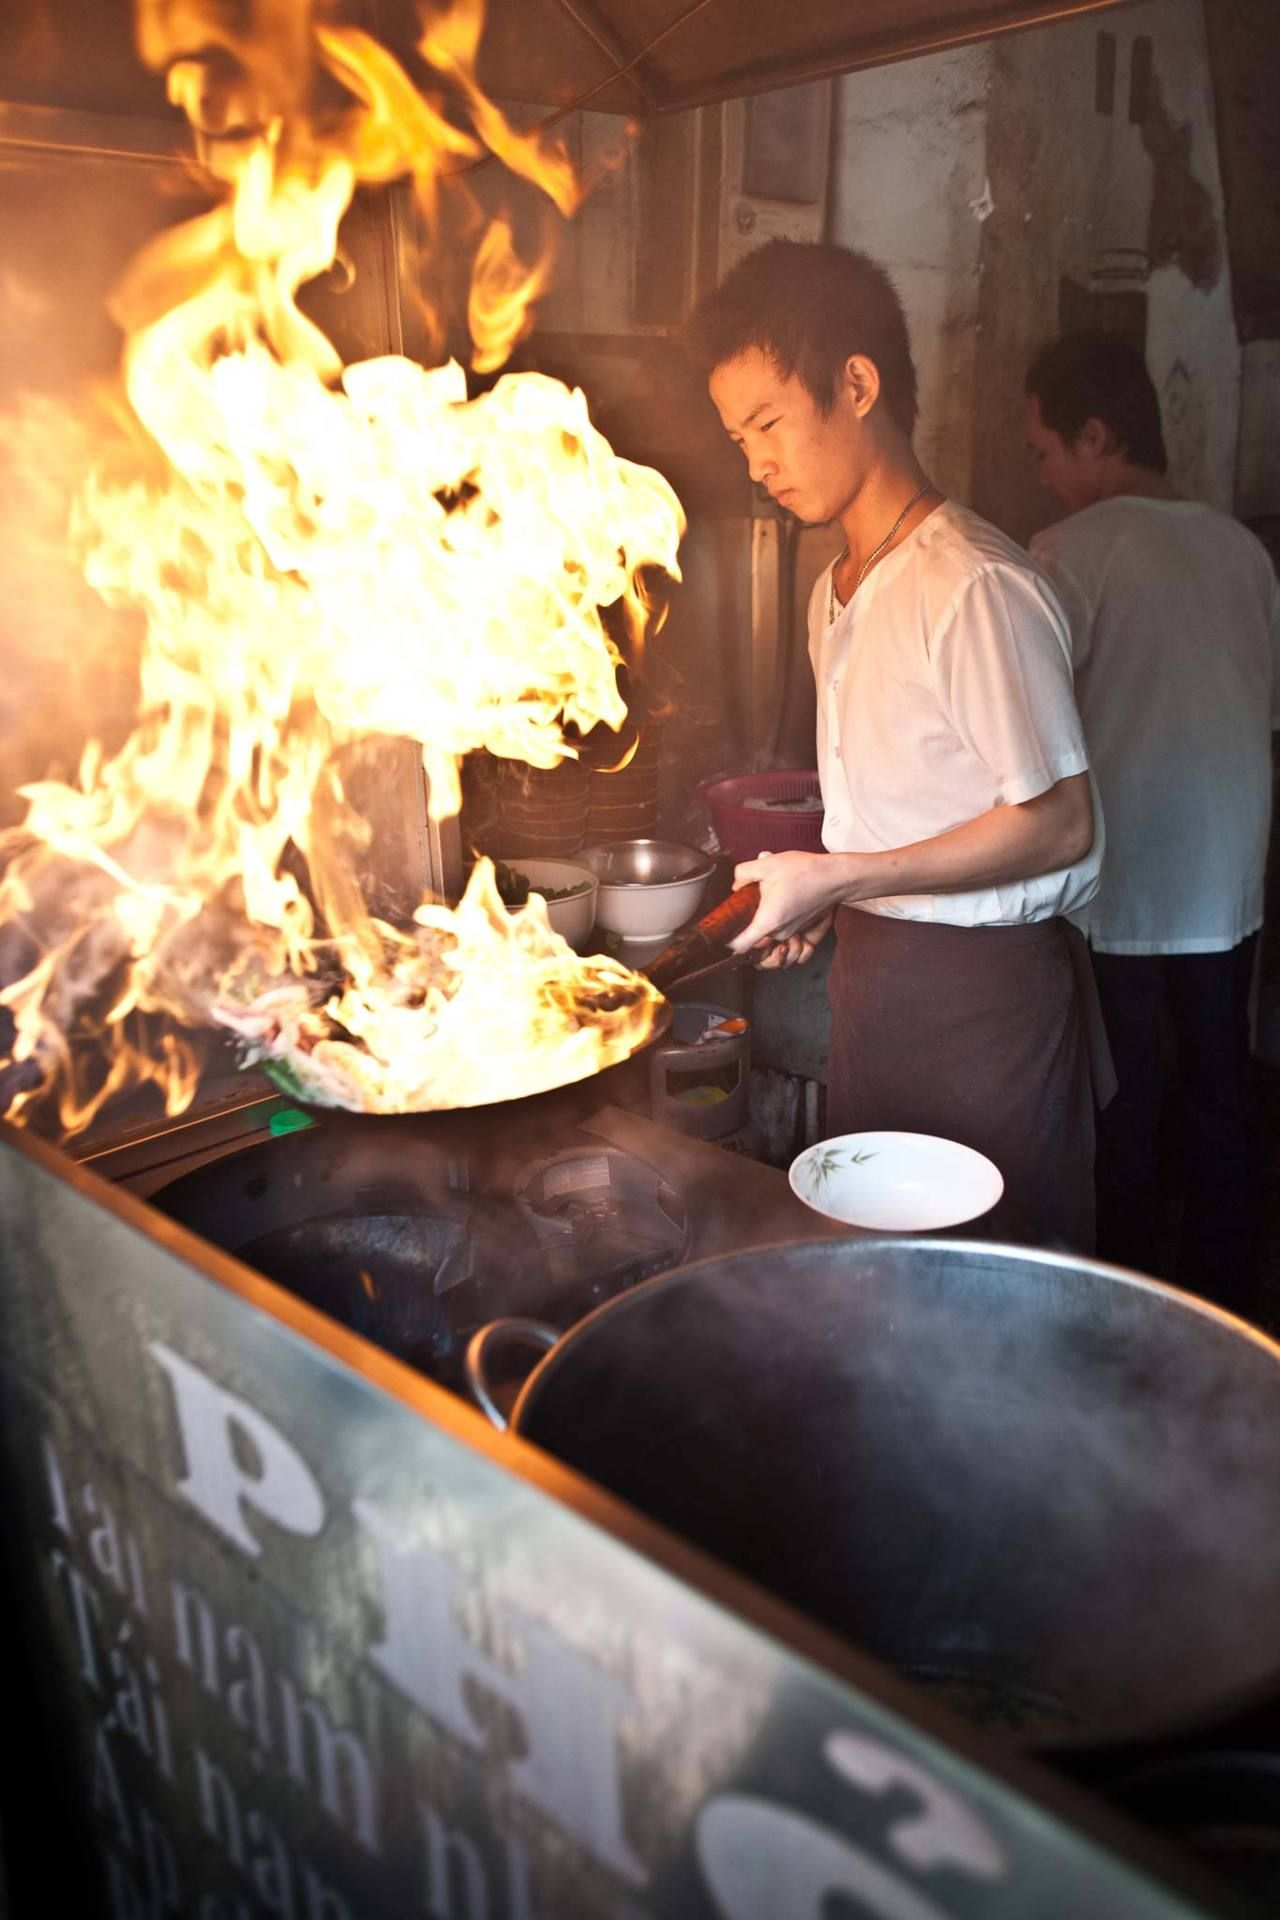 Want to go out to eat? Take a trip through the best of Vietnam's two biggest cities, Hanoi and Saigon, where the fresh local street cuisine demonstrates just how many ways there are to turn on your taste buds.